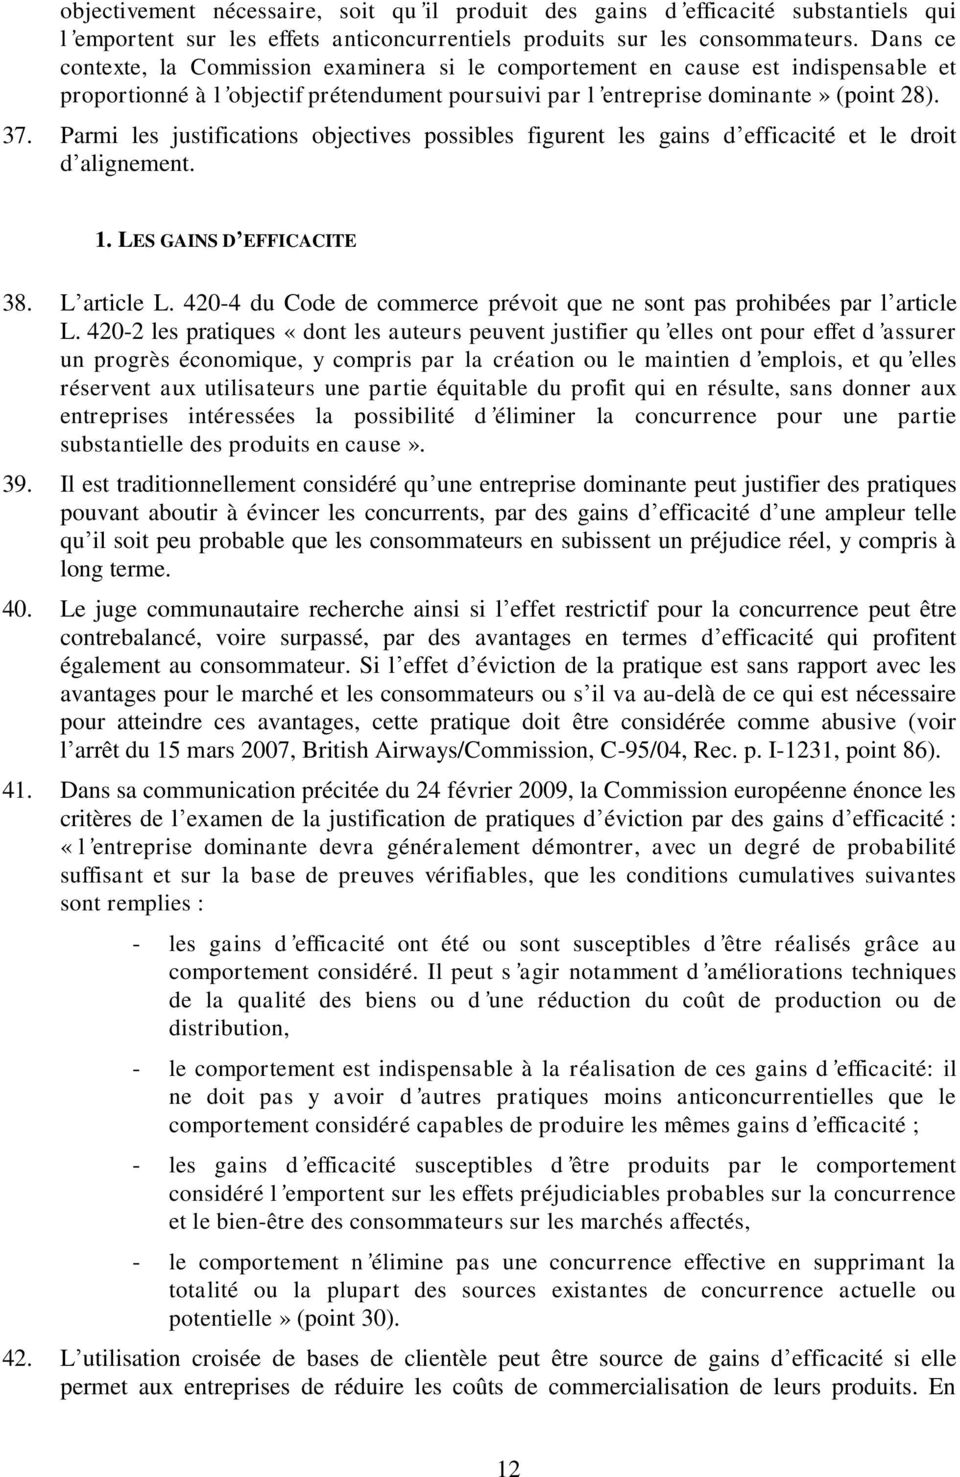 Parmi les justifications objectives possibles figurent les gains d efficacité et le droit d alignement. 1. LES GAINS D EFFICACITE 38. L article L.